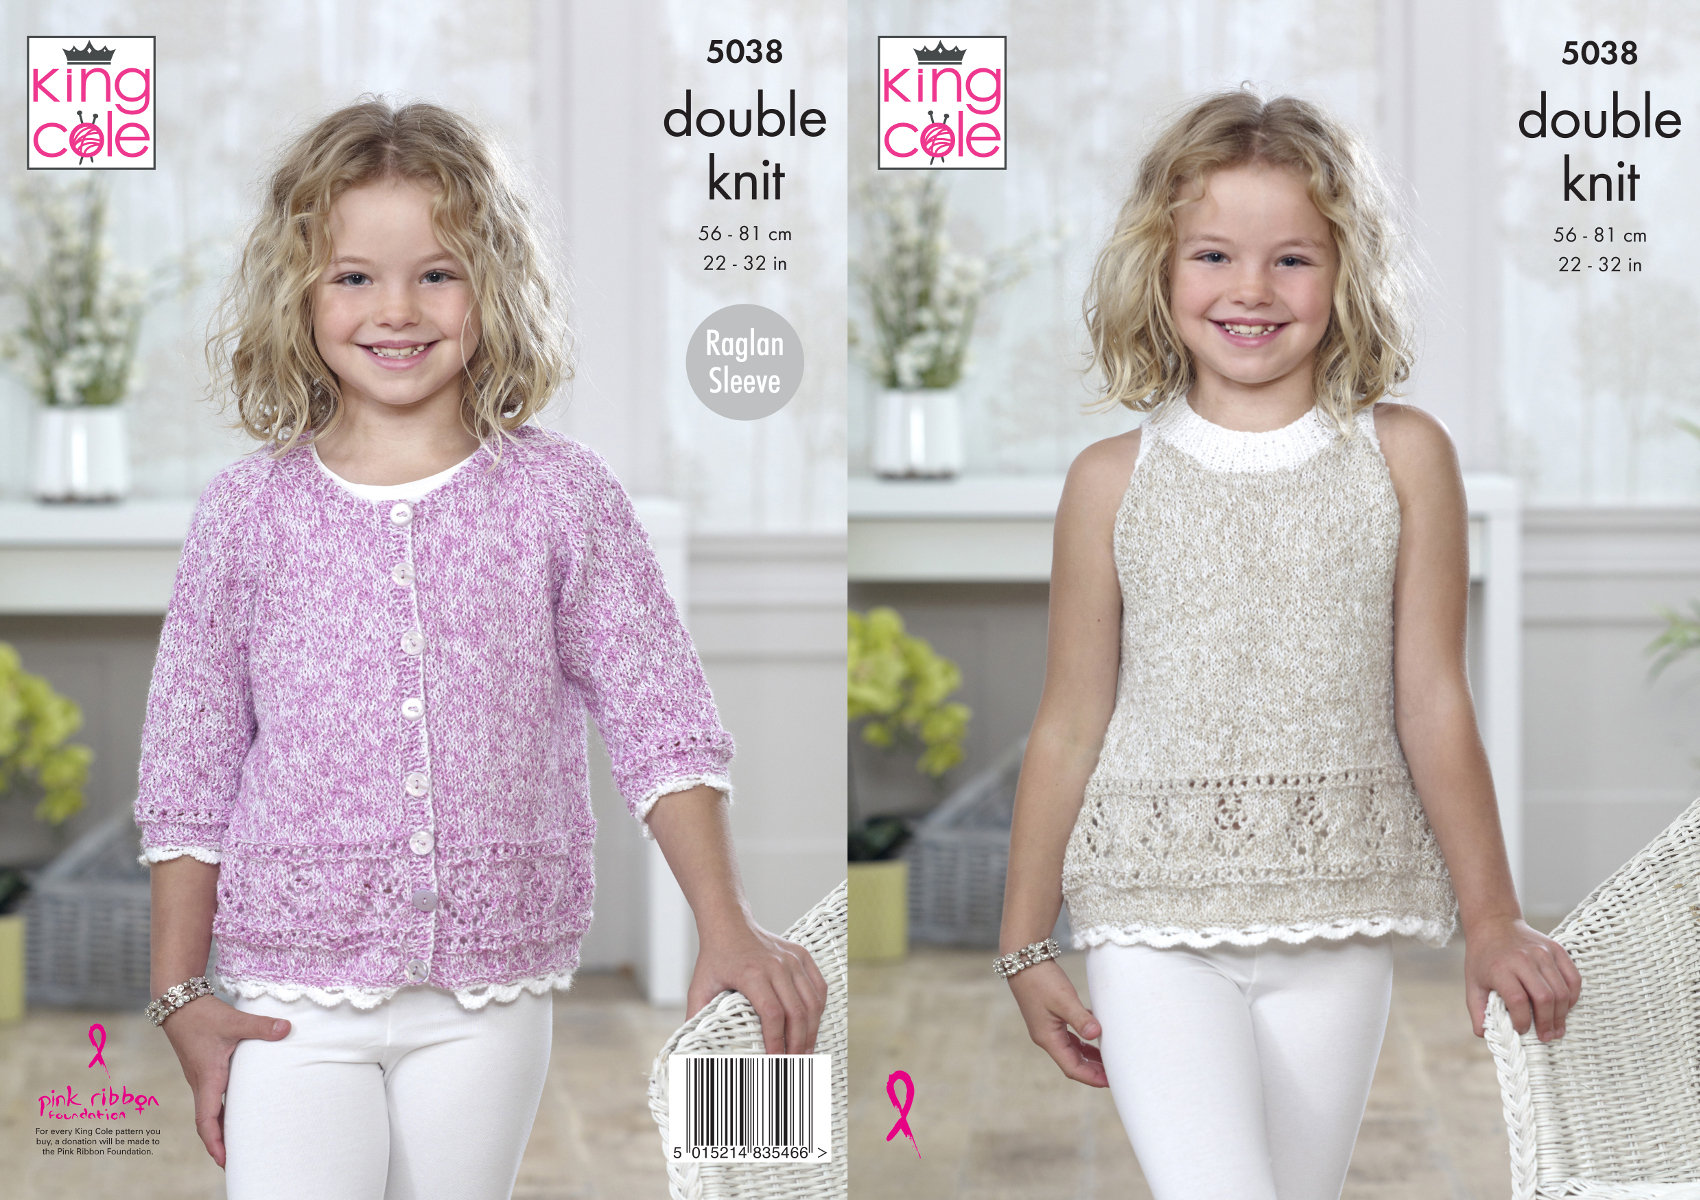 King Cole Girls Double Knitting Pattern Raglan Sleeve Lace Cardigan ...